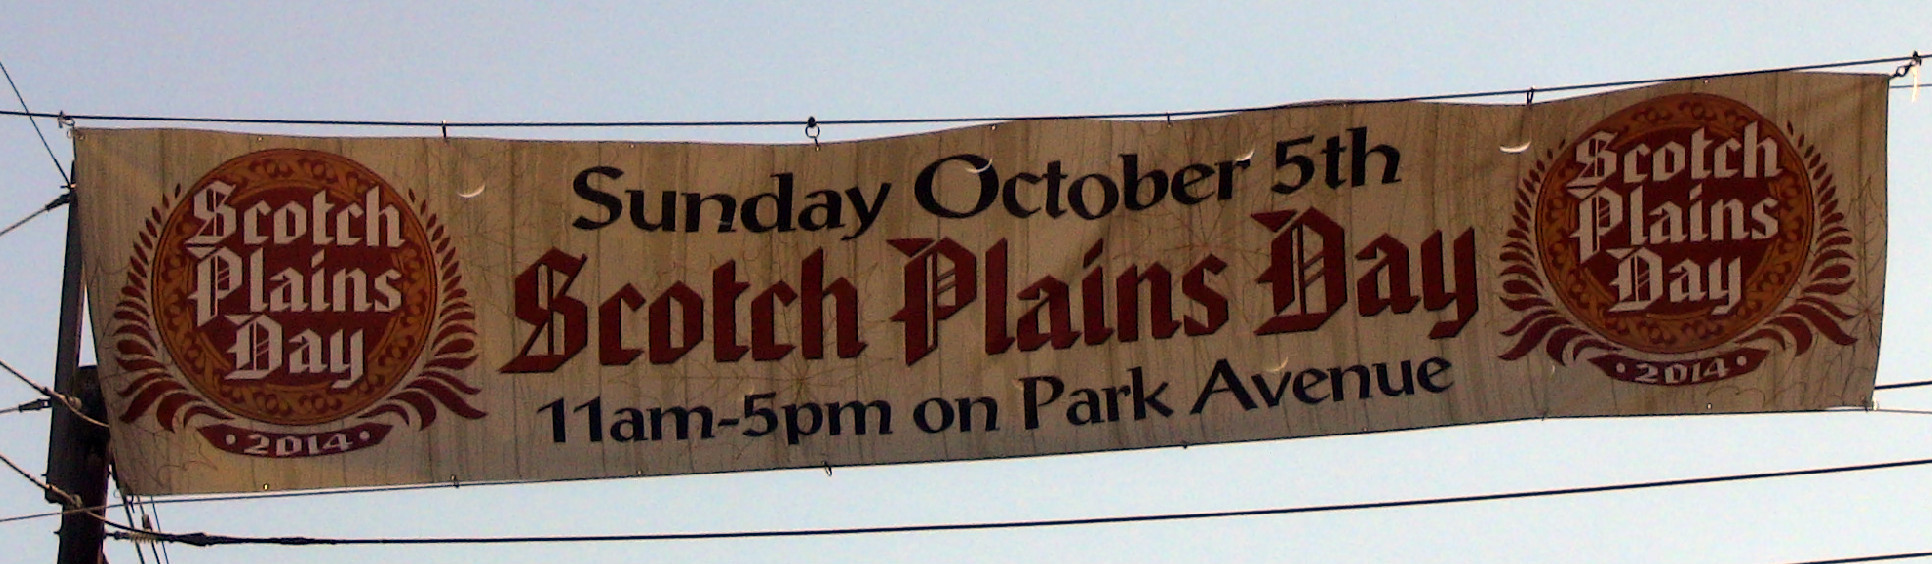 0ffc236eb79691ee116f_Scotch_Plains_Day_banner.jpg